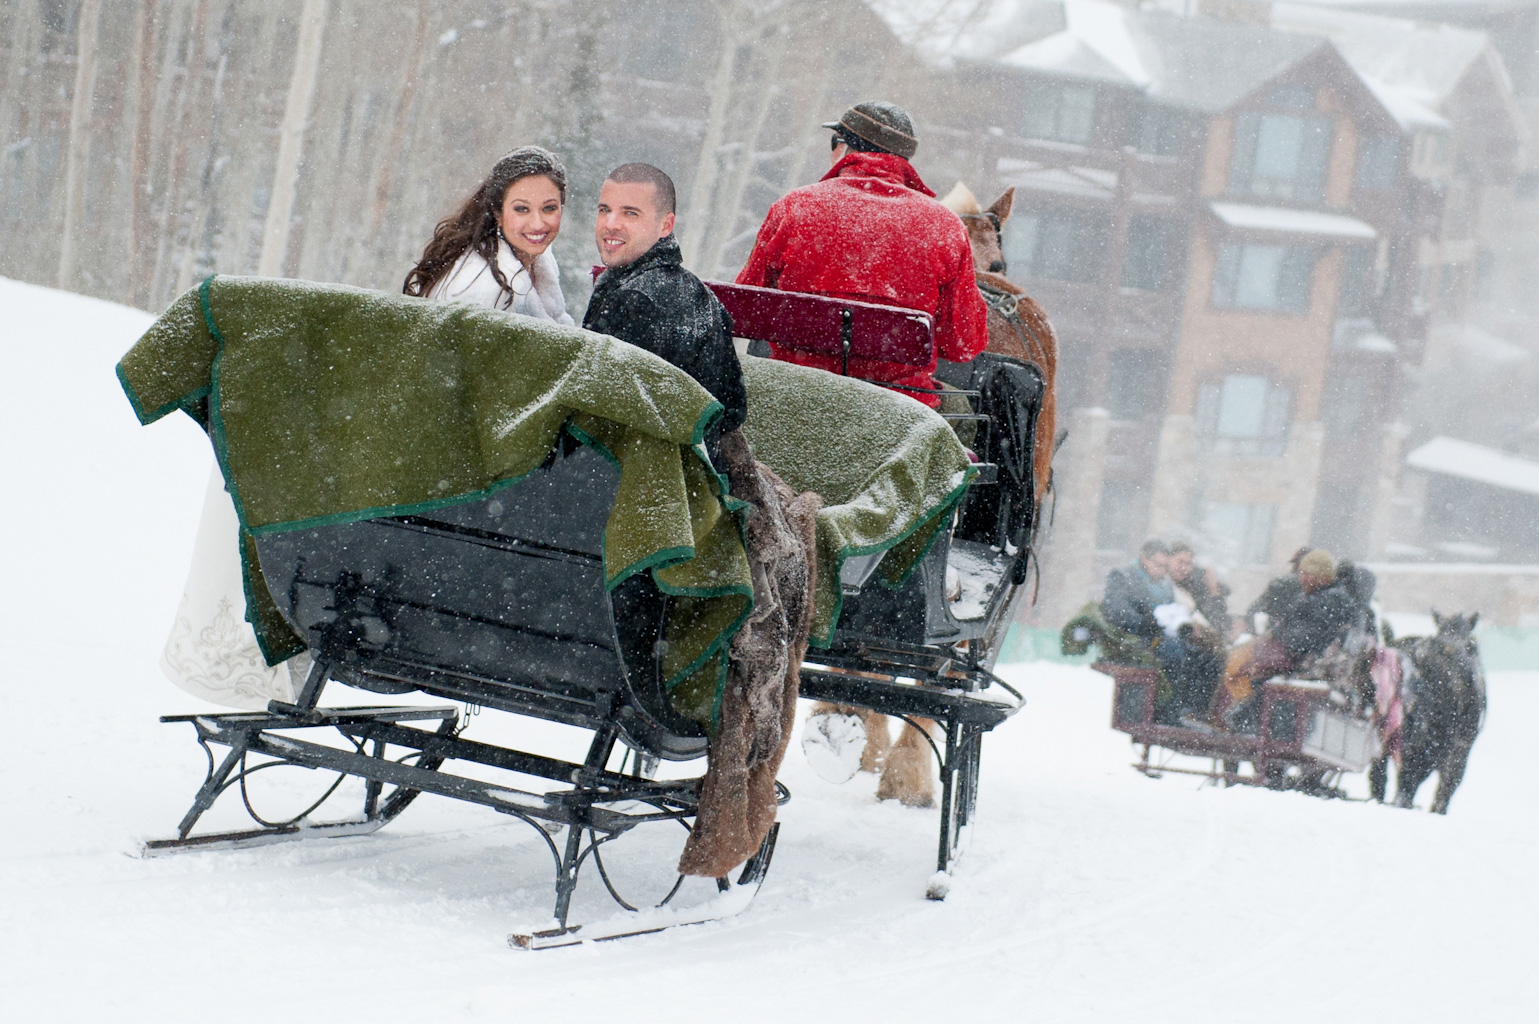 Bride and groom in snow sleigh after ceremony